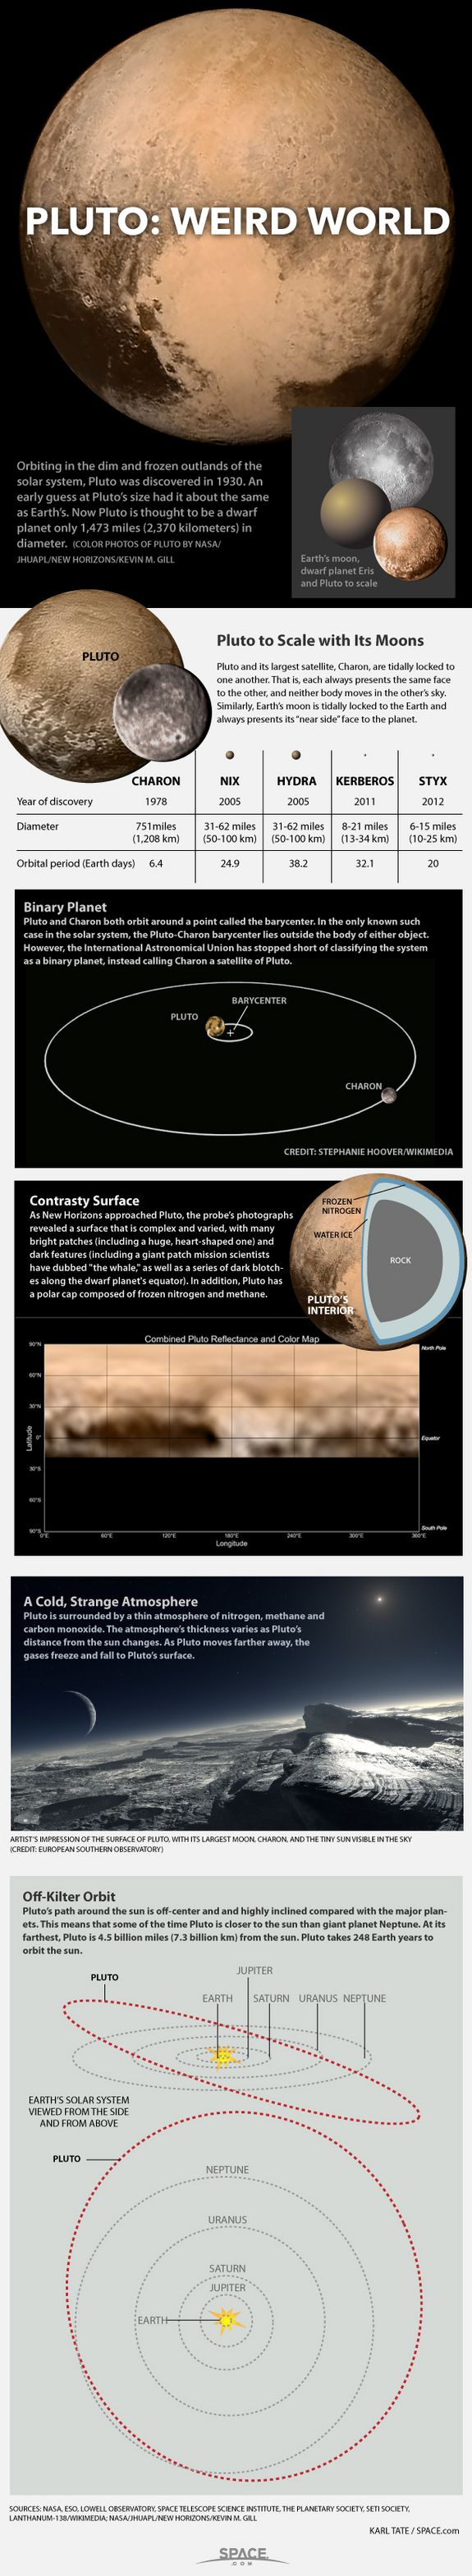 Pluto: A Dwarf Planet Oddity, SPACE.com | July 2012